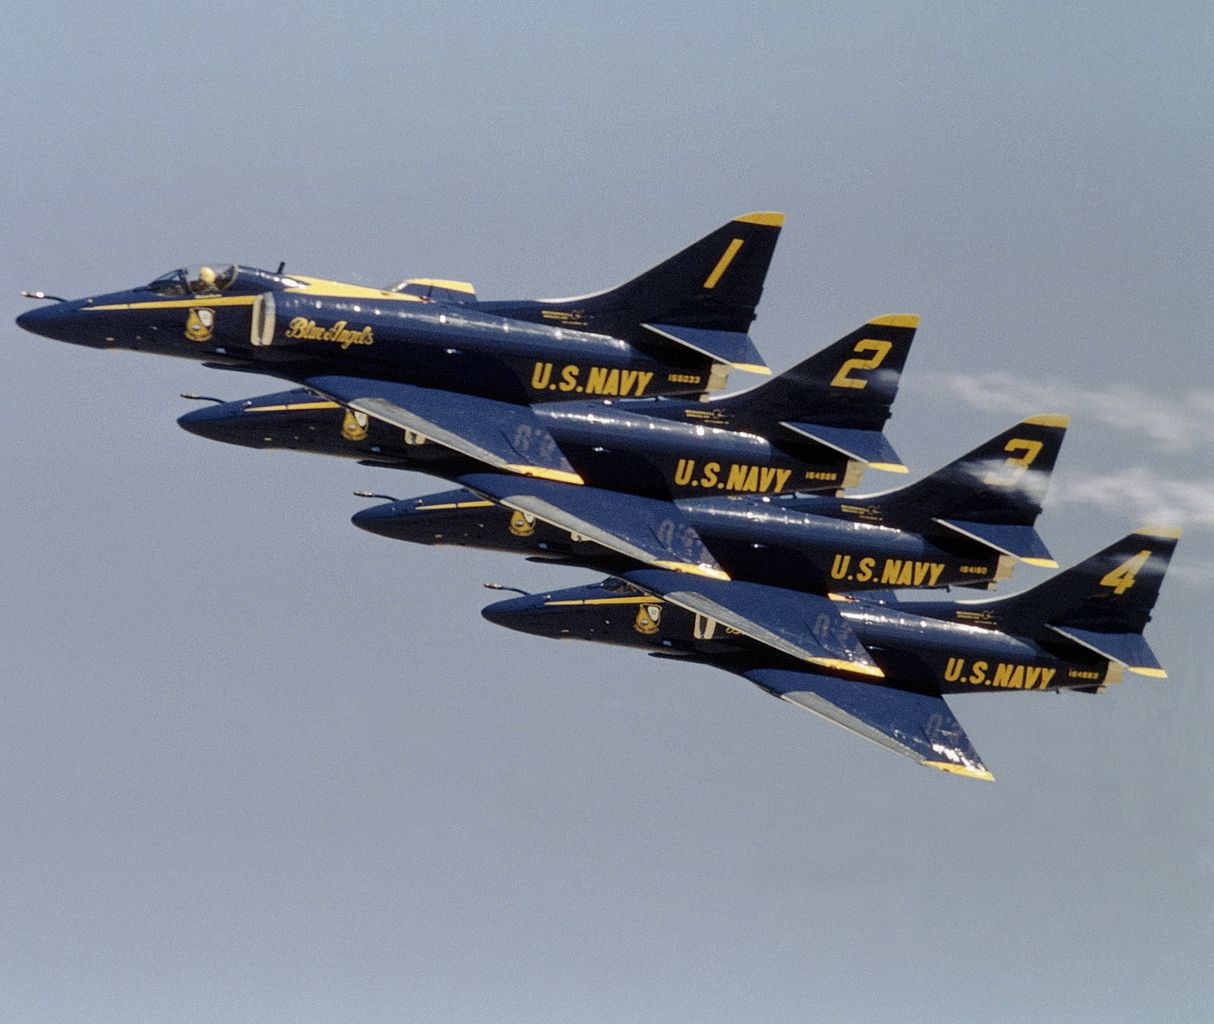 The nimble Douglas A-4 Skyhawk was pressed into service in the early years of the Vietnam War. From 1974 to 1986 they were flown by the Blue Angels.                  (U.S.   Defense Imagery)